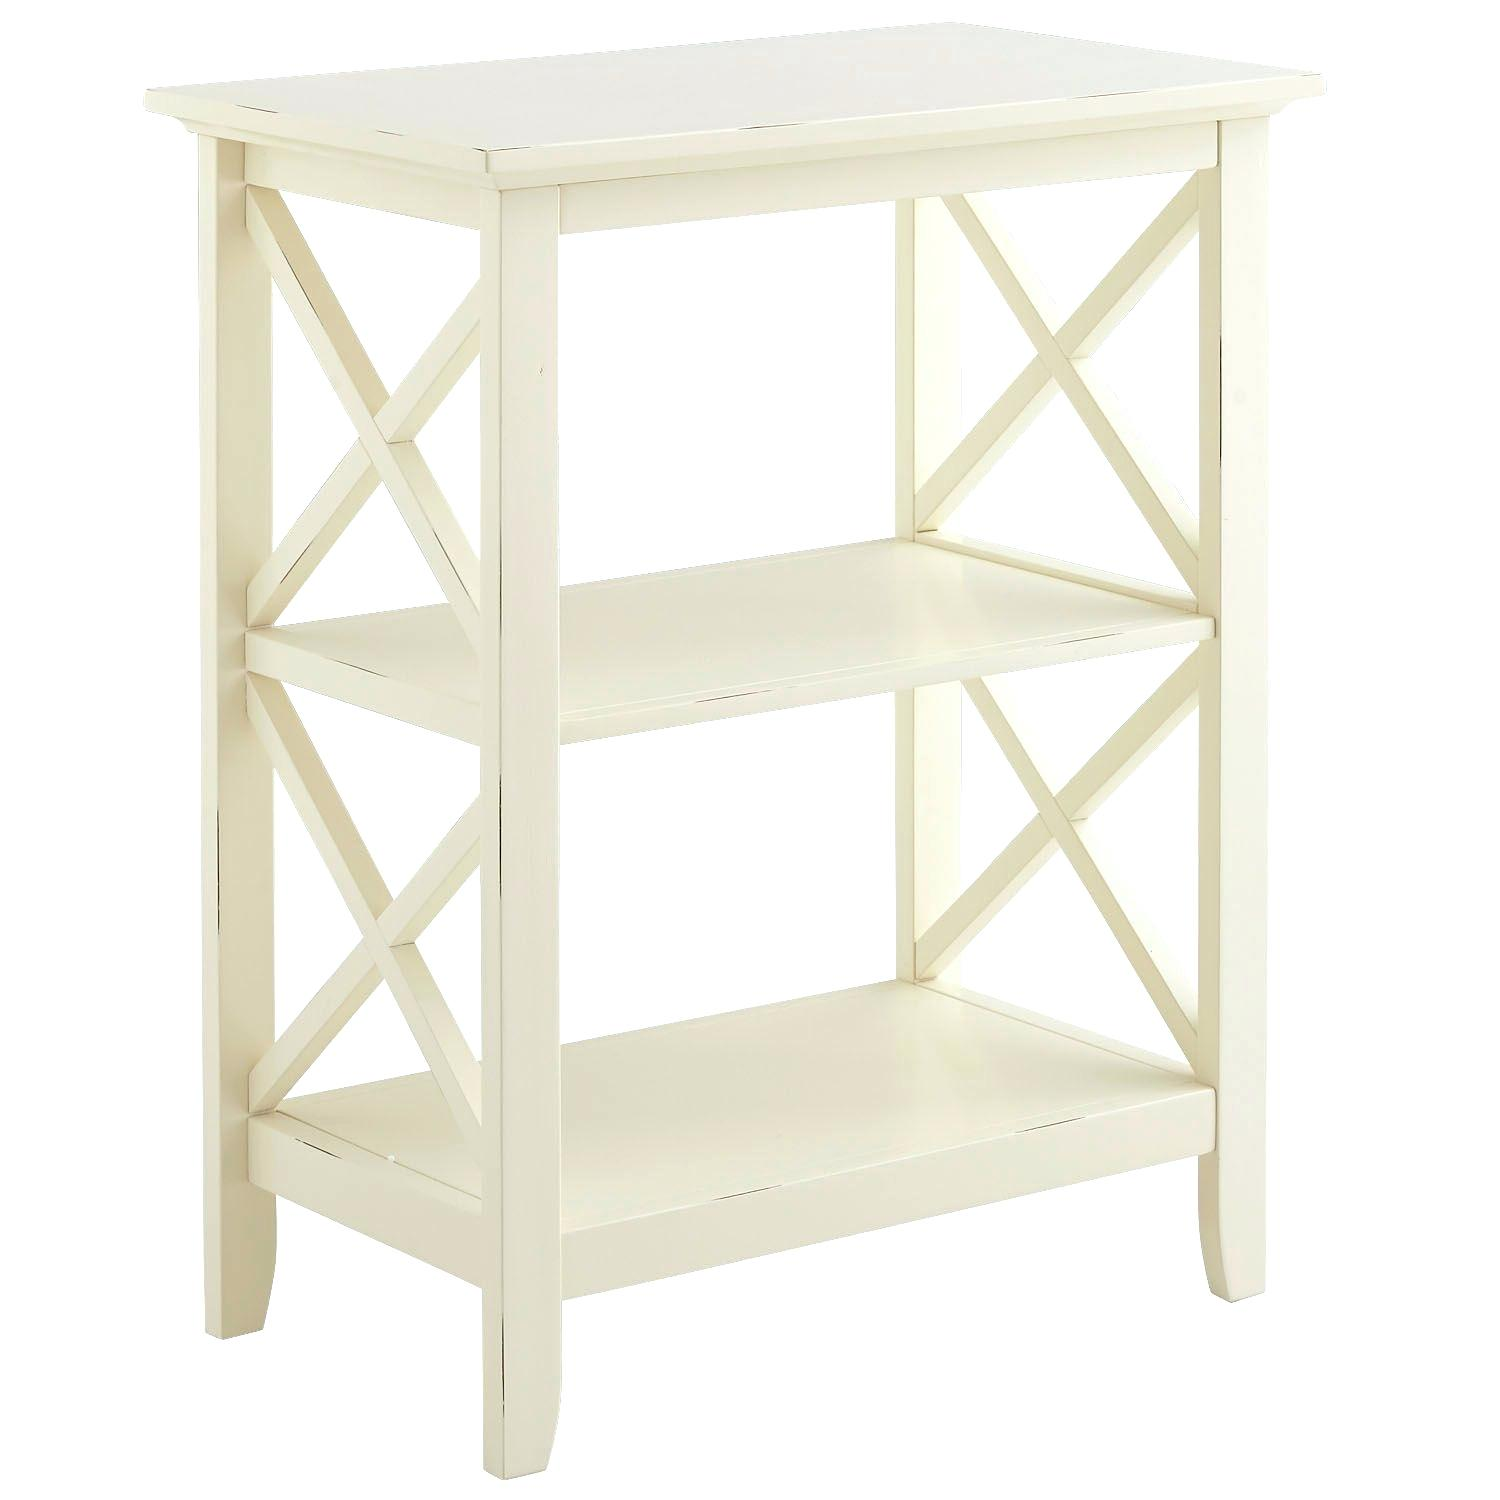 antique white accent table medium save this item open gallery eryn barn style interior doors colorful lamps nautical kitchen lighting fixtures high gloss side mahogany coffee